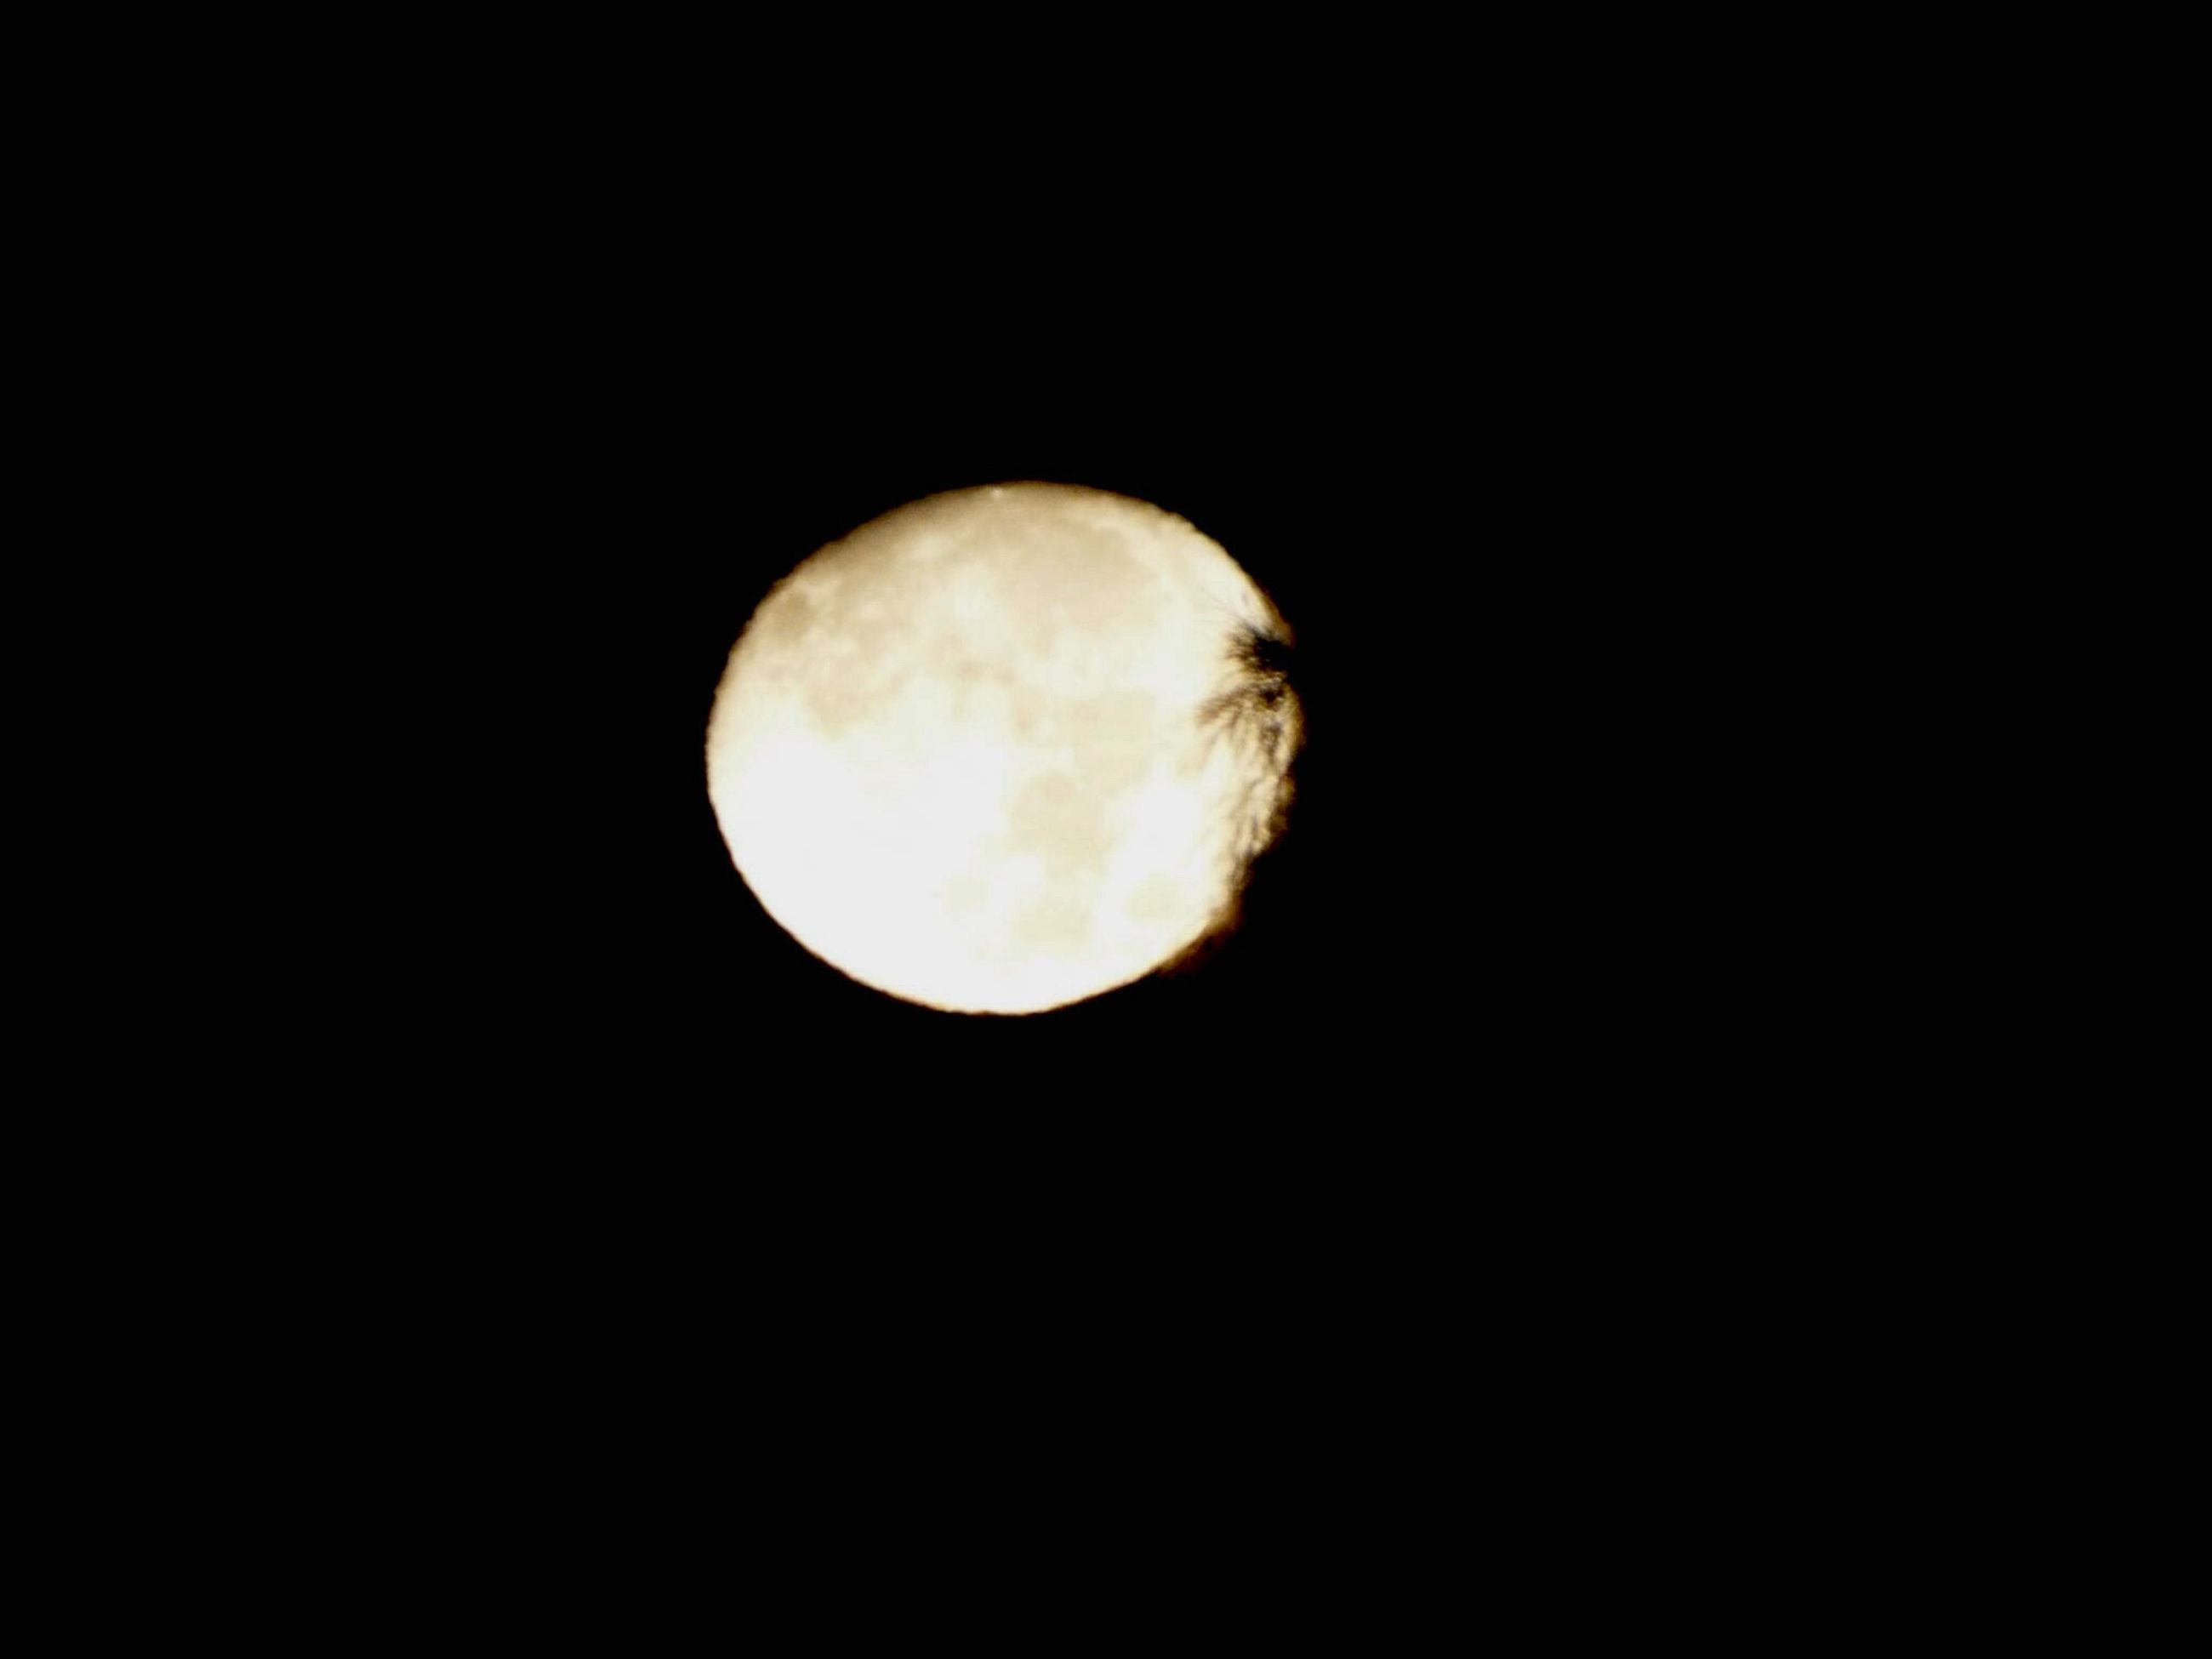 moon, astronomy, planetary moon, full moon, night, moon surface, beauty in nature, discovery, copy space, space exploration, tranquility, tranquil scene, scenics, circle, sphere, dark, nature, low angle view, exploration, majestic